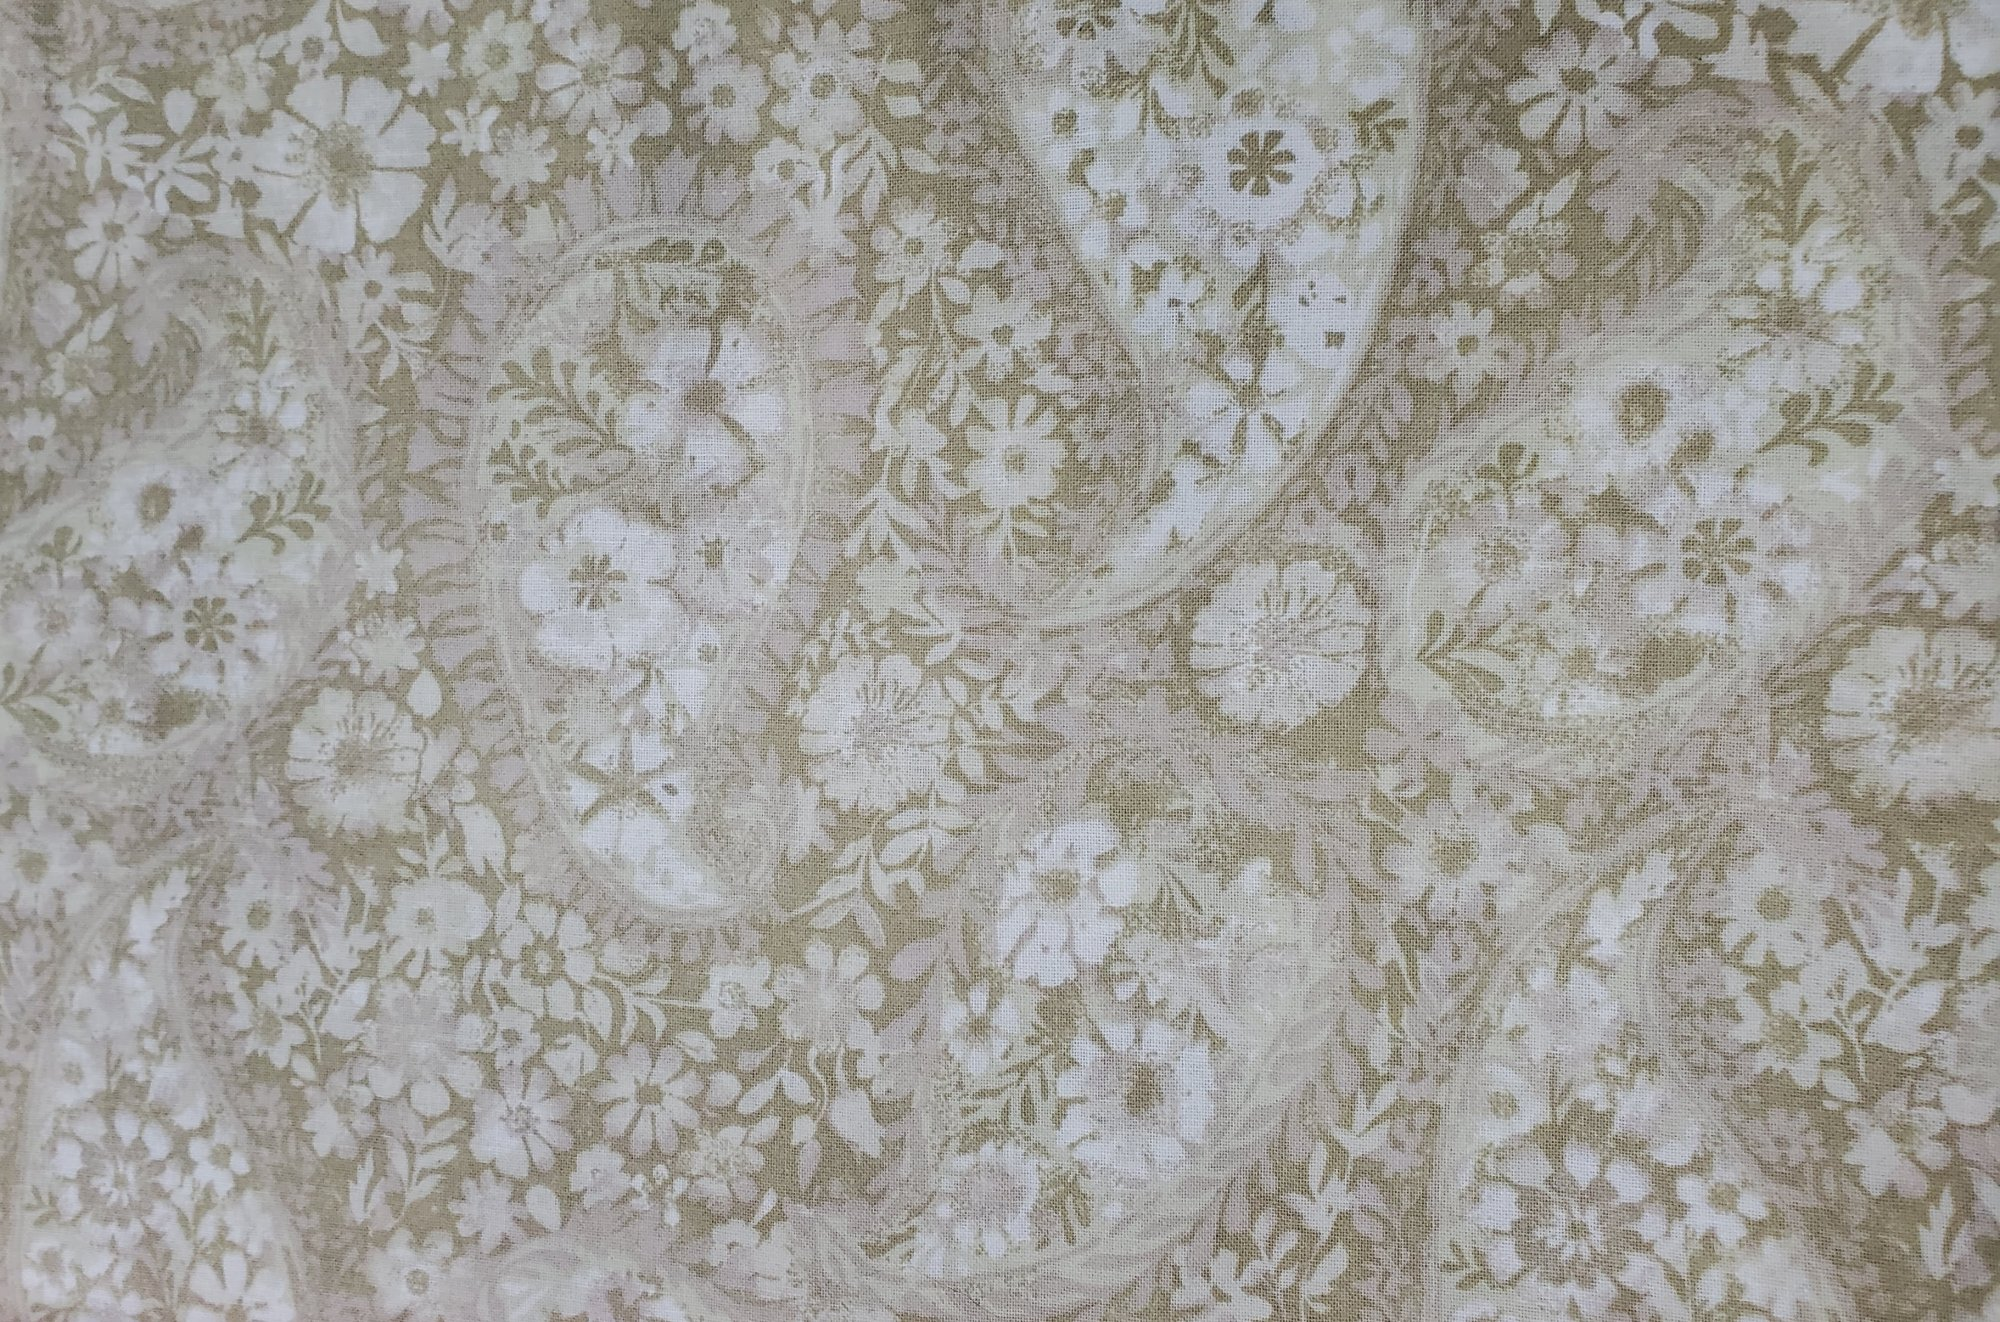 3 Yard Backing Piece: 108 Wide Tan Tonal Floral Paisley in a single 3 yard piece